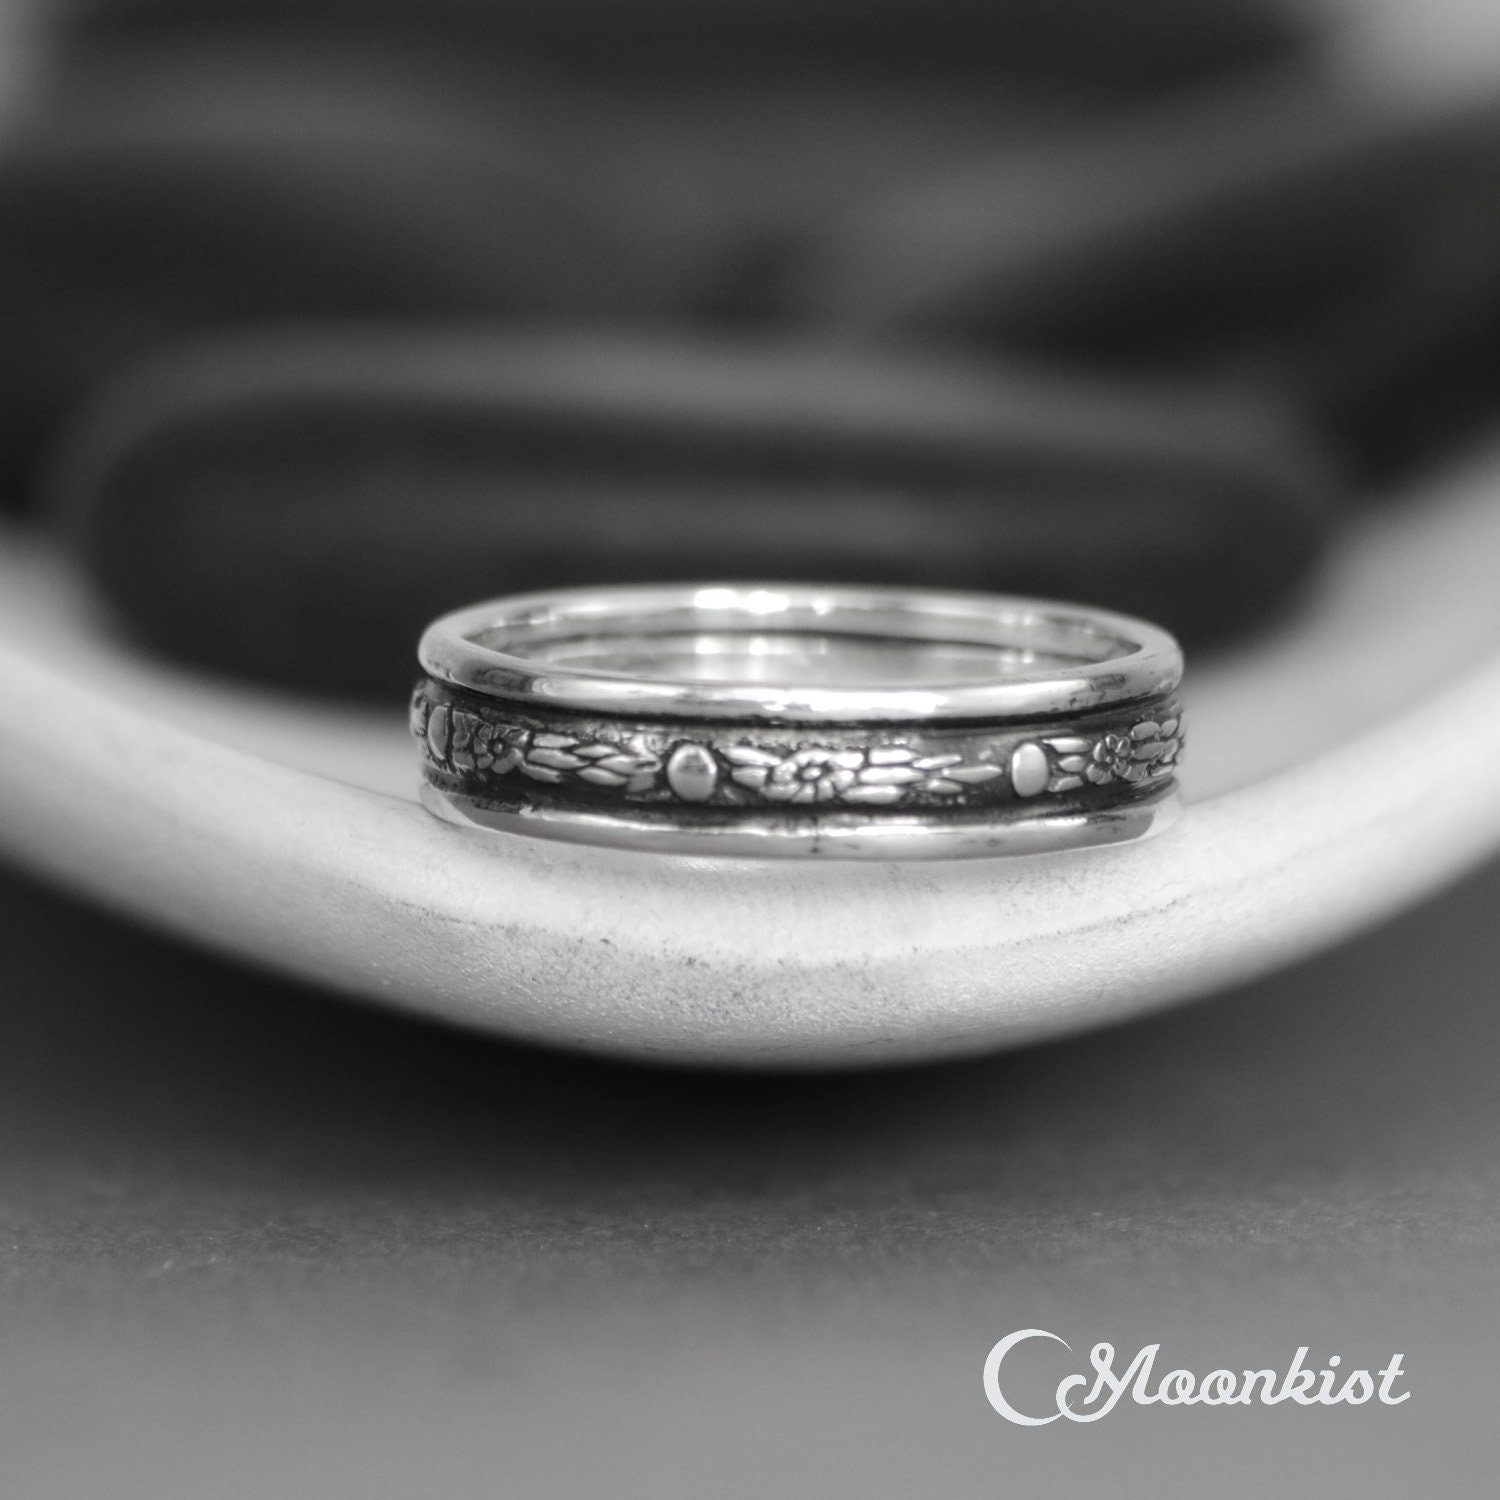 Celestial Bands: Celestial Wedding Band Sterling Silver Mens Wedding Band